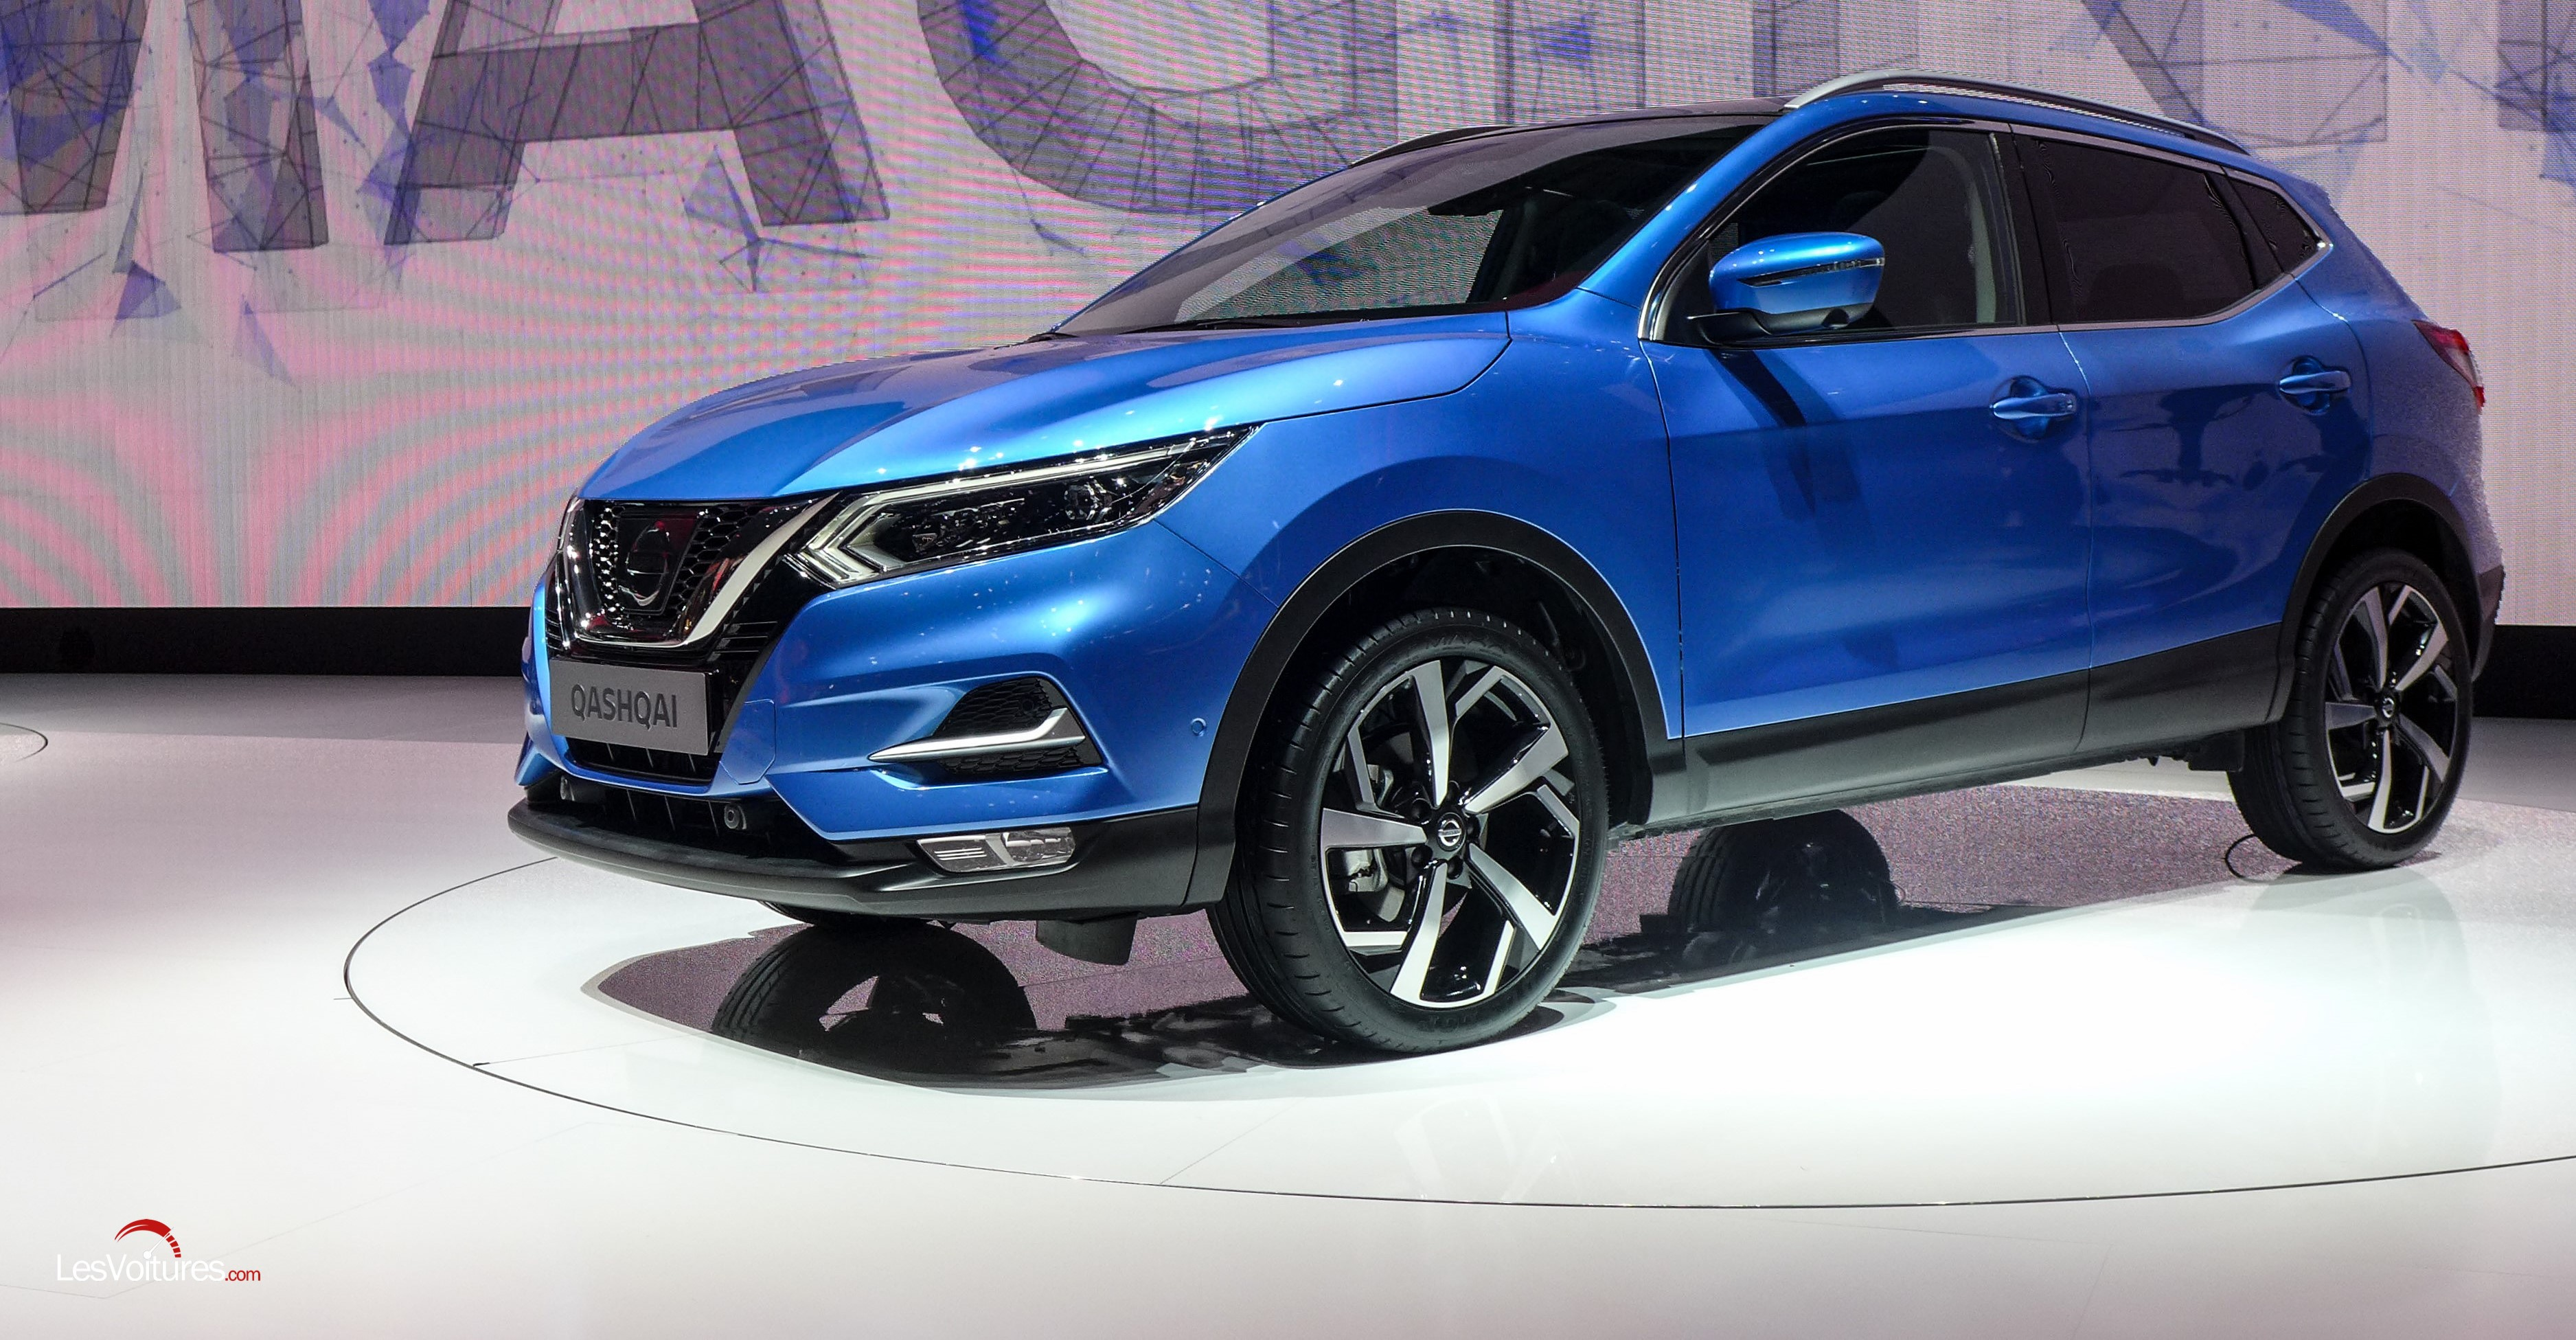 nissan qashqai le pionner des crossovers se refait une beaut technologique les voitures. Black Bedroom Furniture Sets. Home Design Ideas